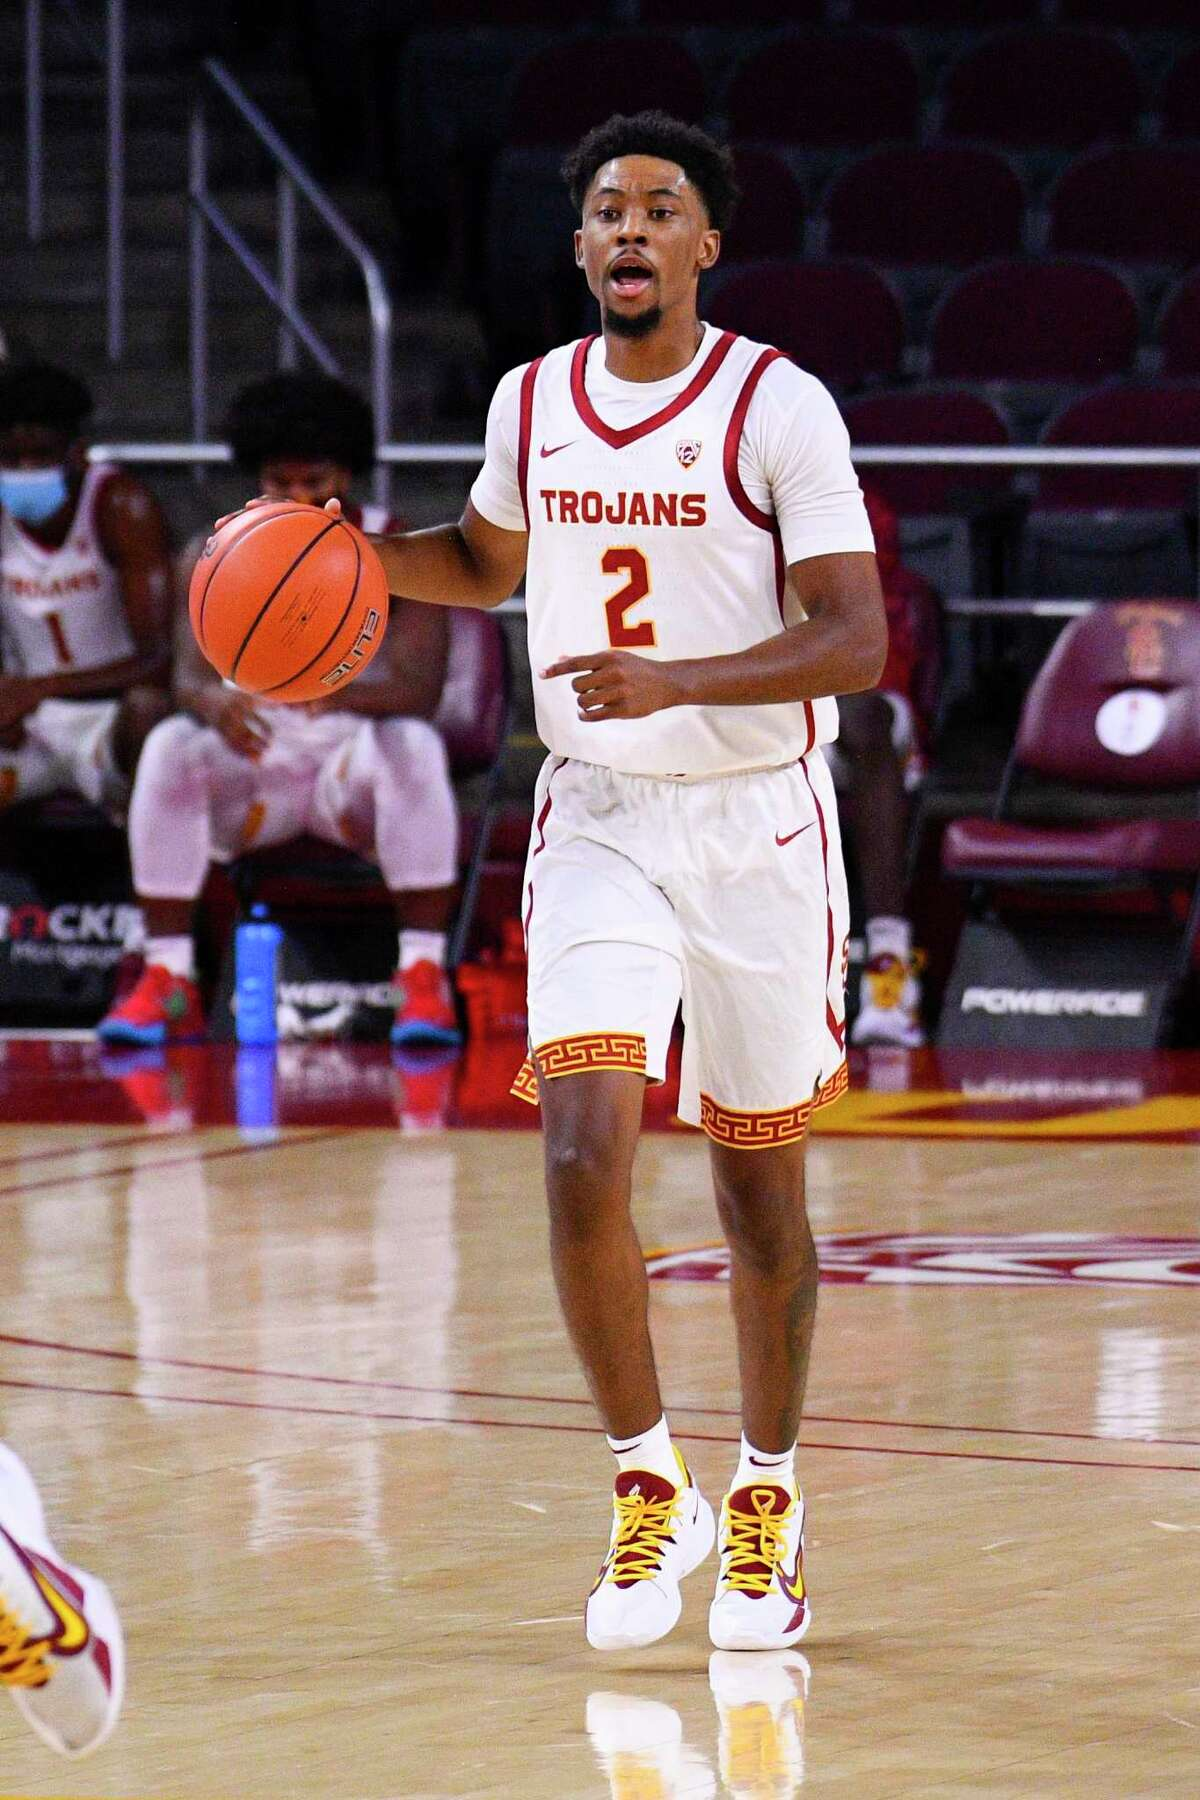 USC guard Tahj Eaddy brings the ball up the court against California in November.